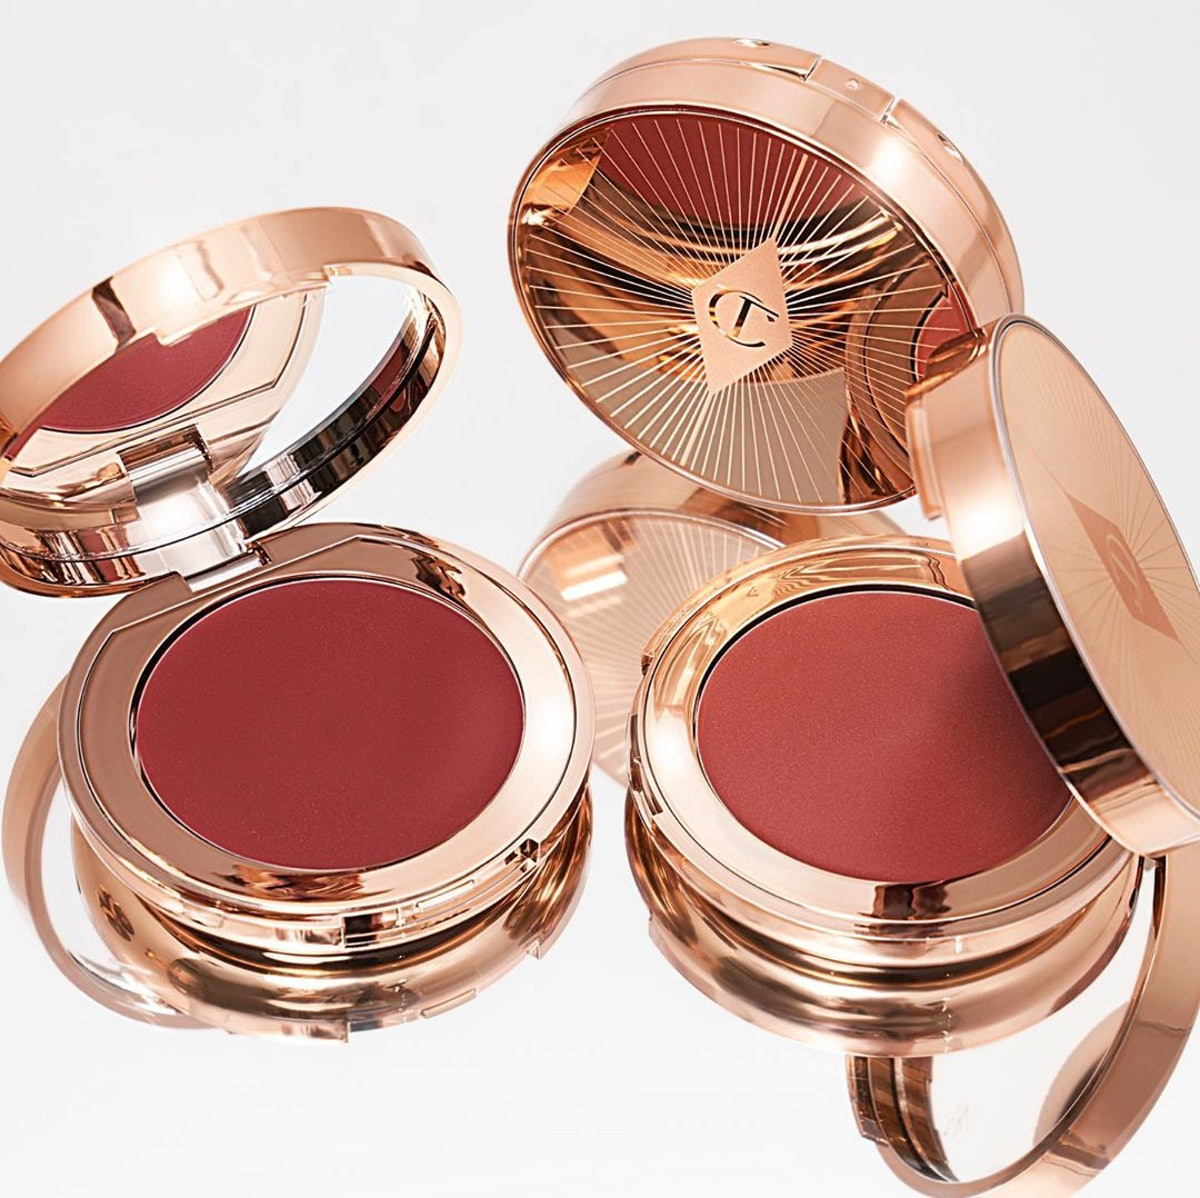 Charlotte Tilbury's new Pillow Talk Lip & Cheek Glow is the two-in-one product your summer makeup ro...